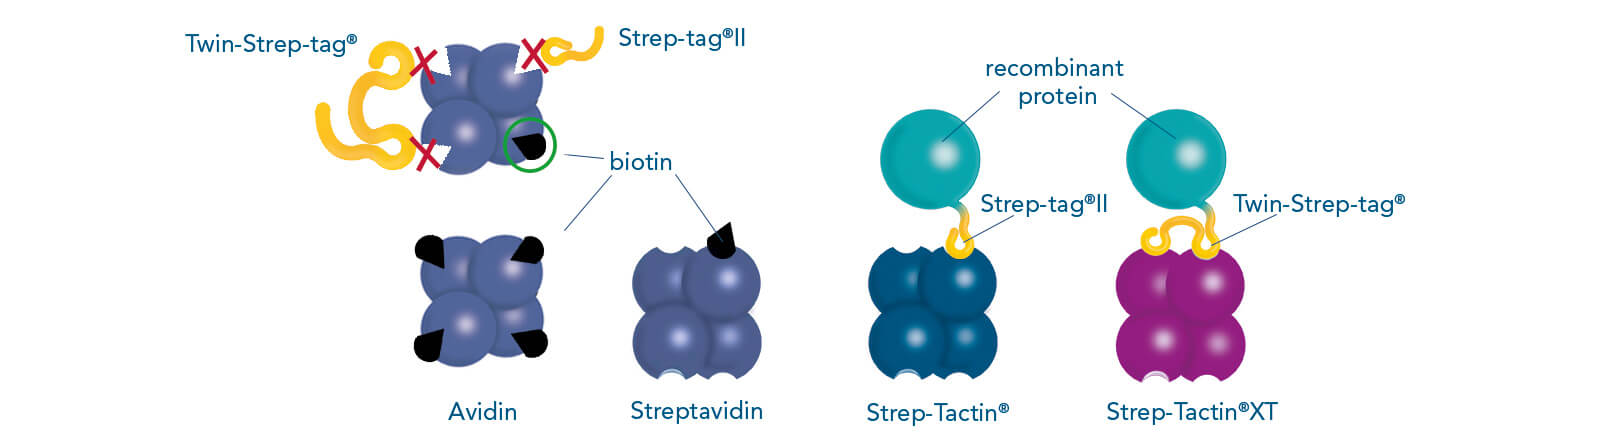 Binding patterns of Strep-tag®II, Twin-Strep-tag® and biotin